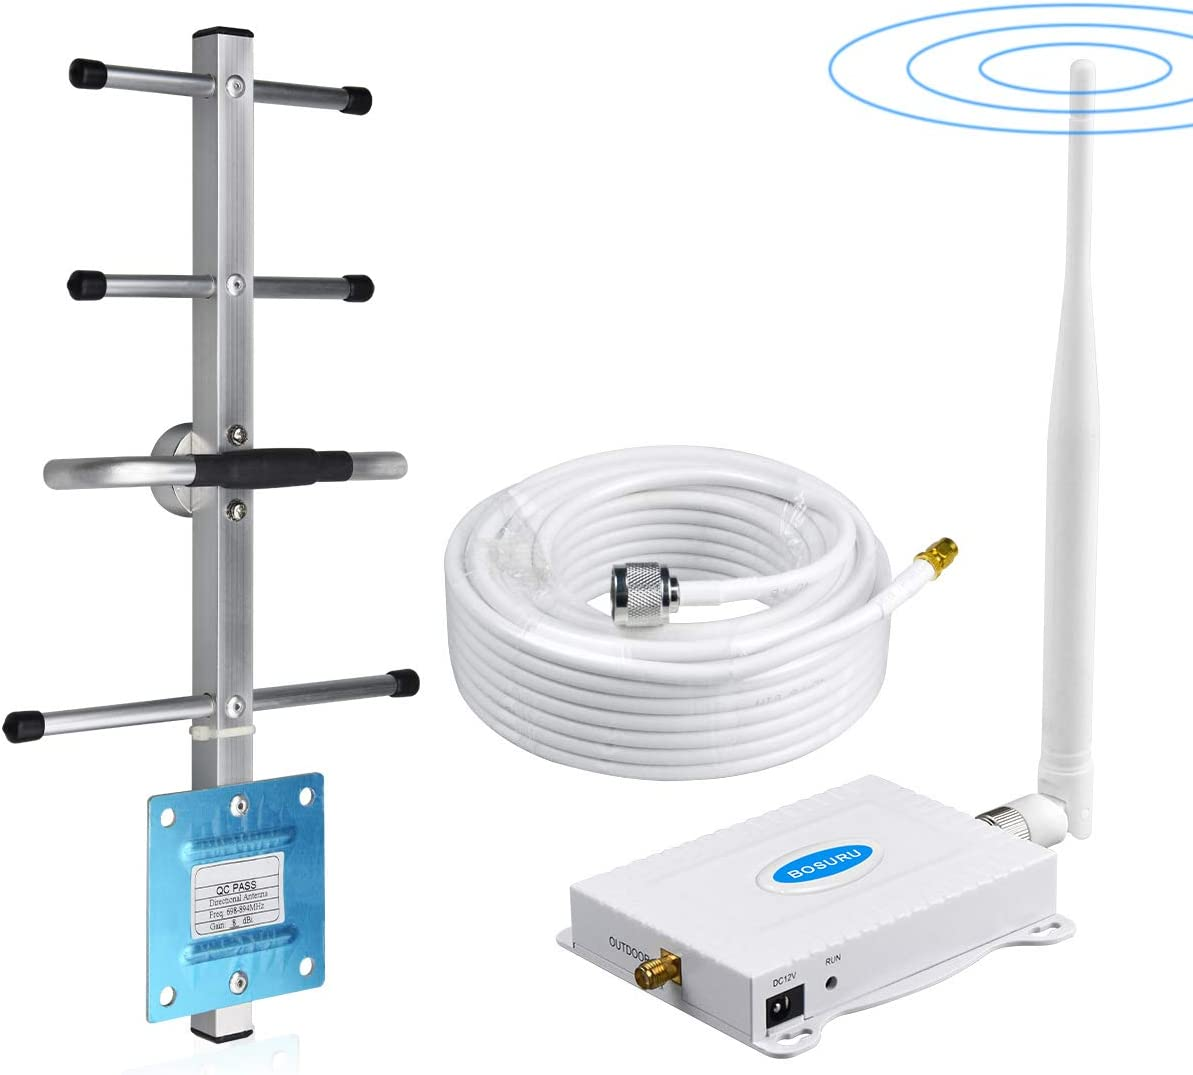 Verizon Cell Phone Signal Booster 4G LTE Cell Phone Booster Verizon Cell Signal Booster Verizon Signal Booster Amplifier Band13 FDD Home Cell Booster Enhance 4G Voice +Data with Antennas for Home